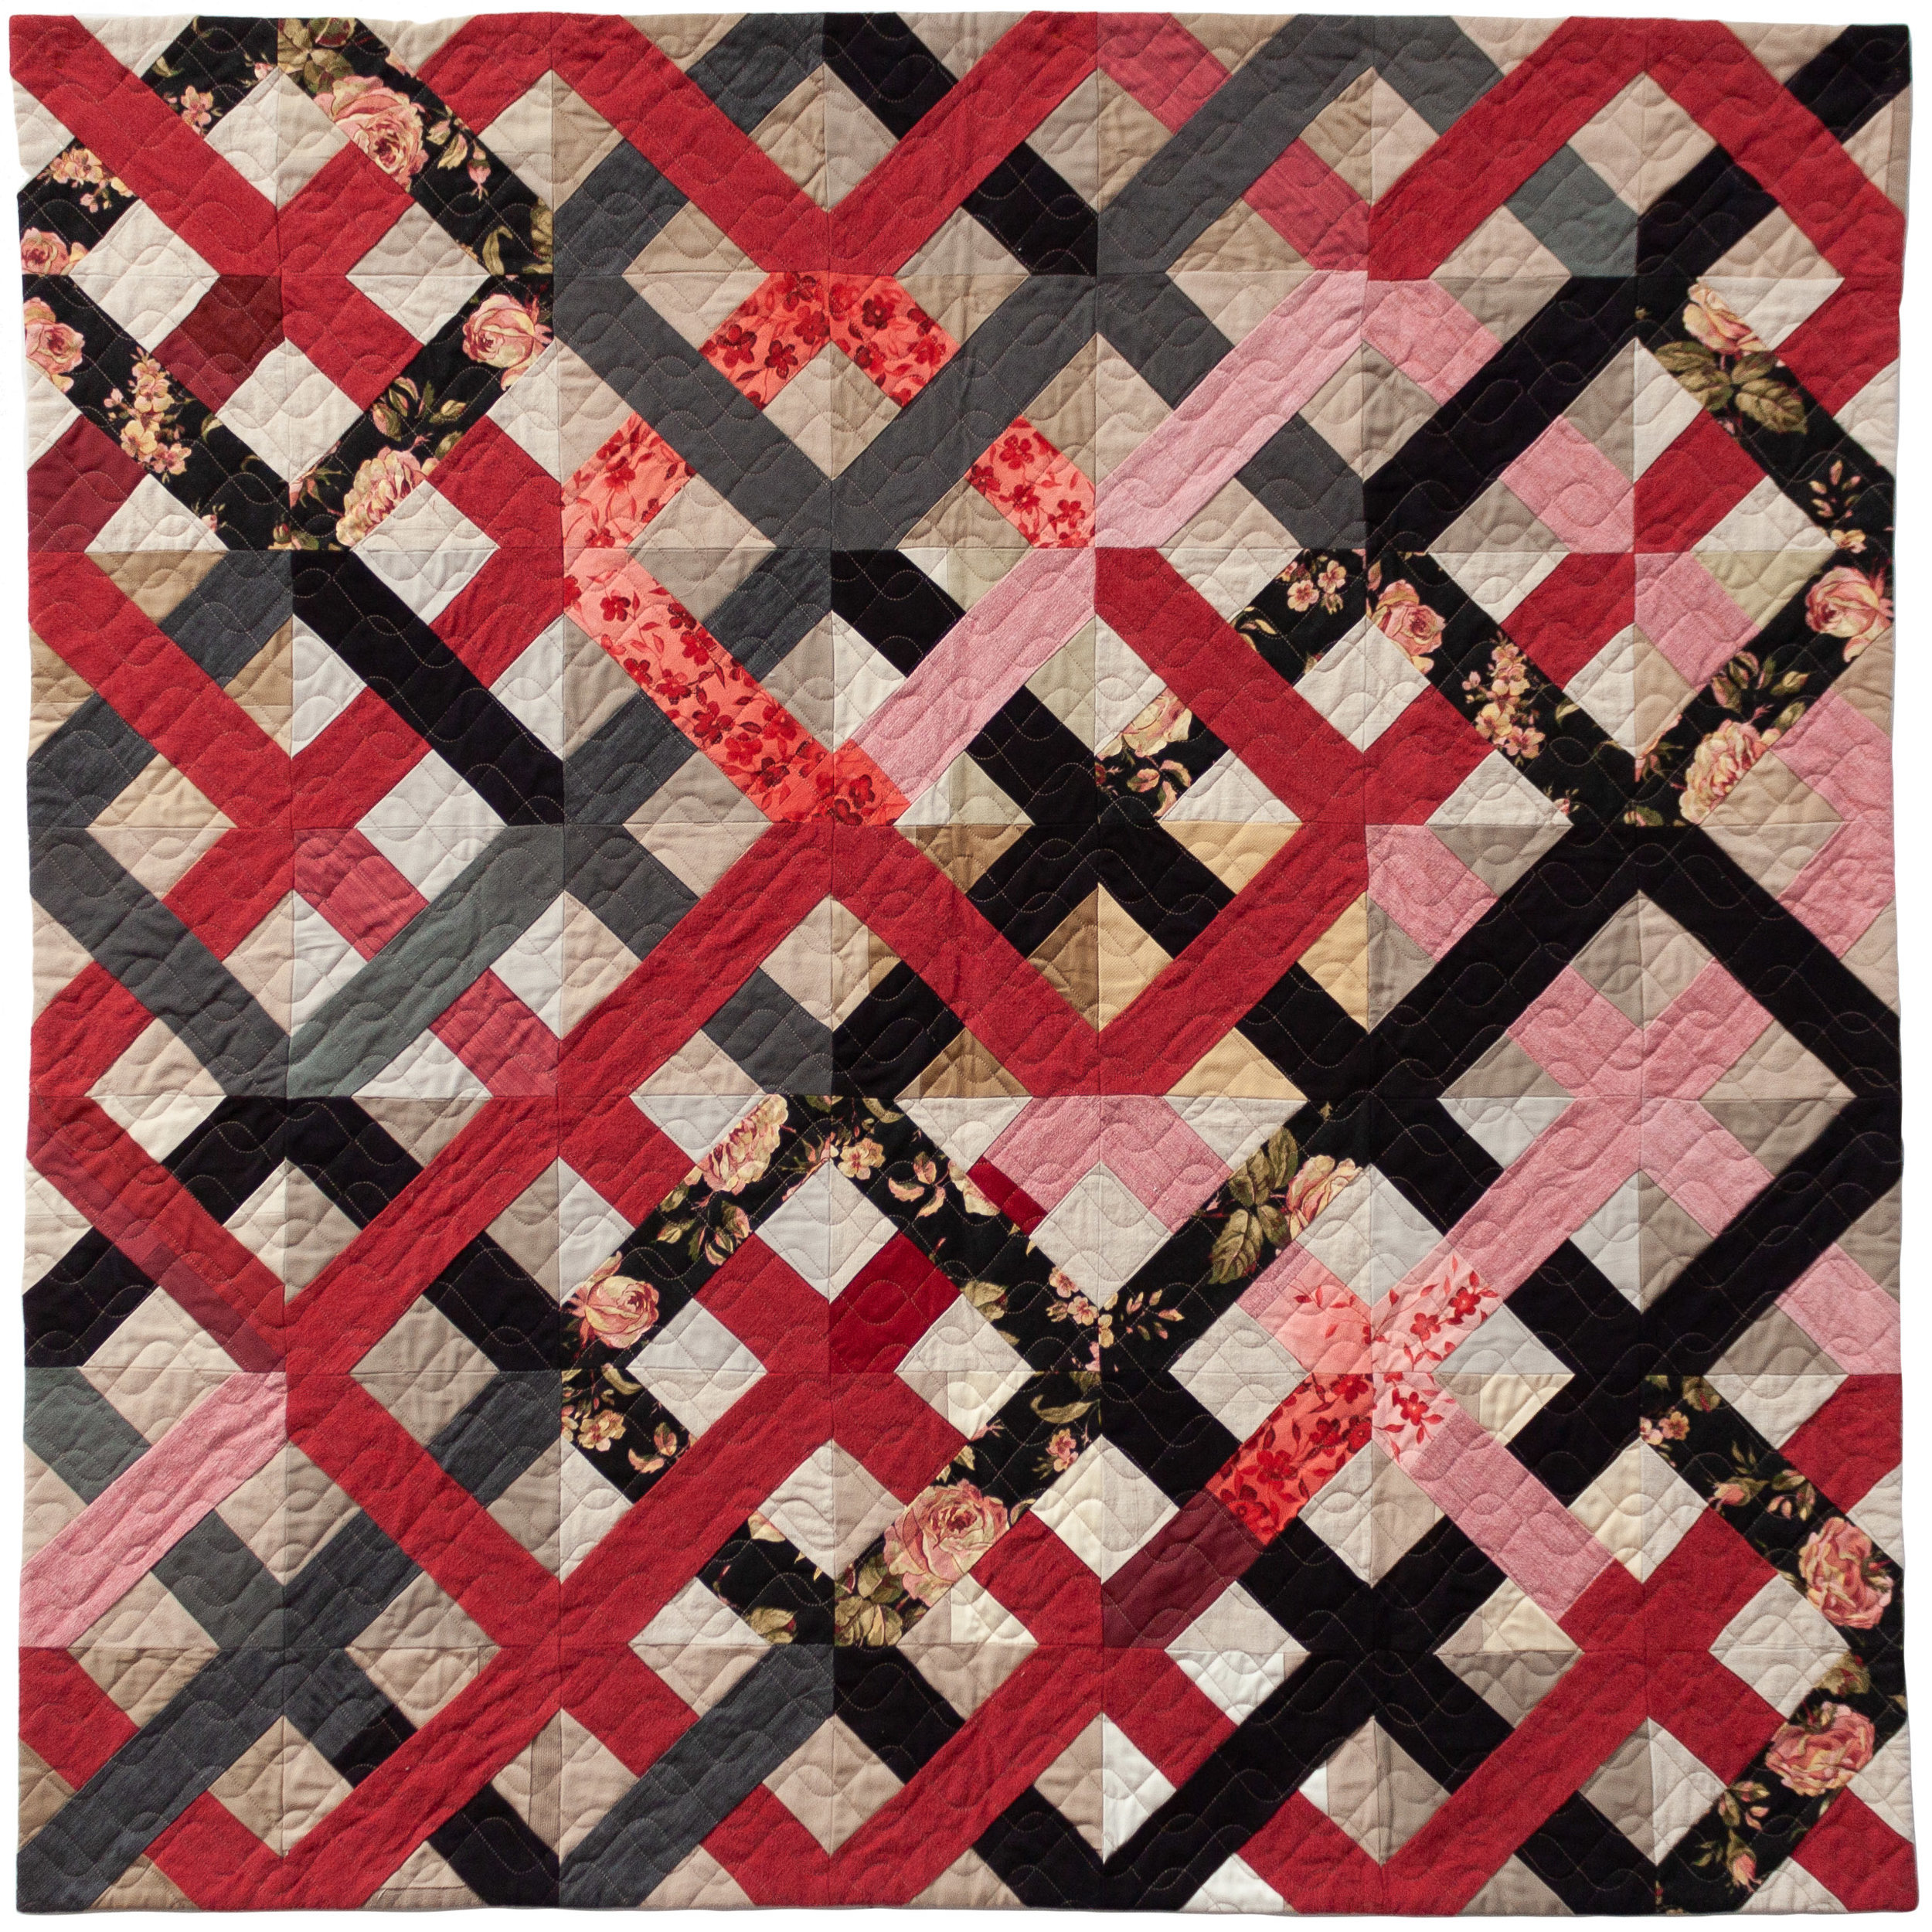 Rose Lattice Quilt.jpg